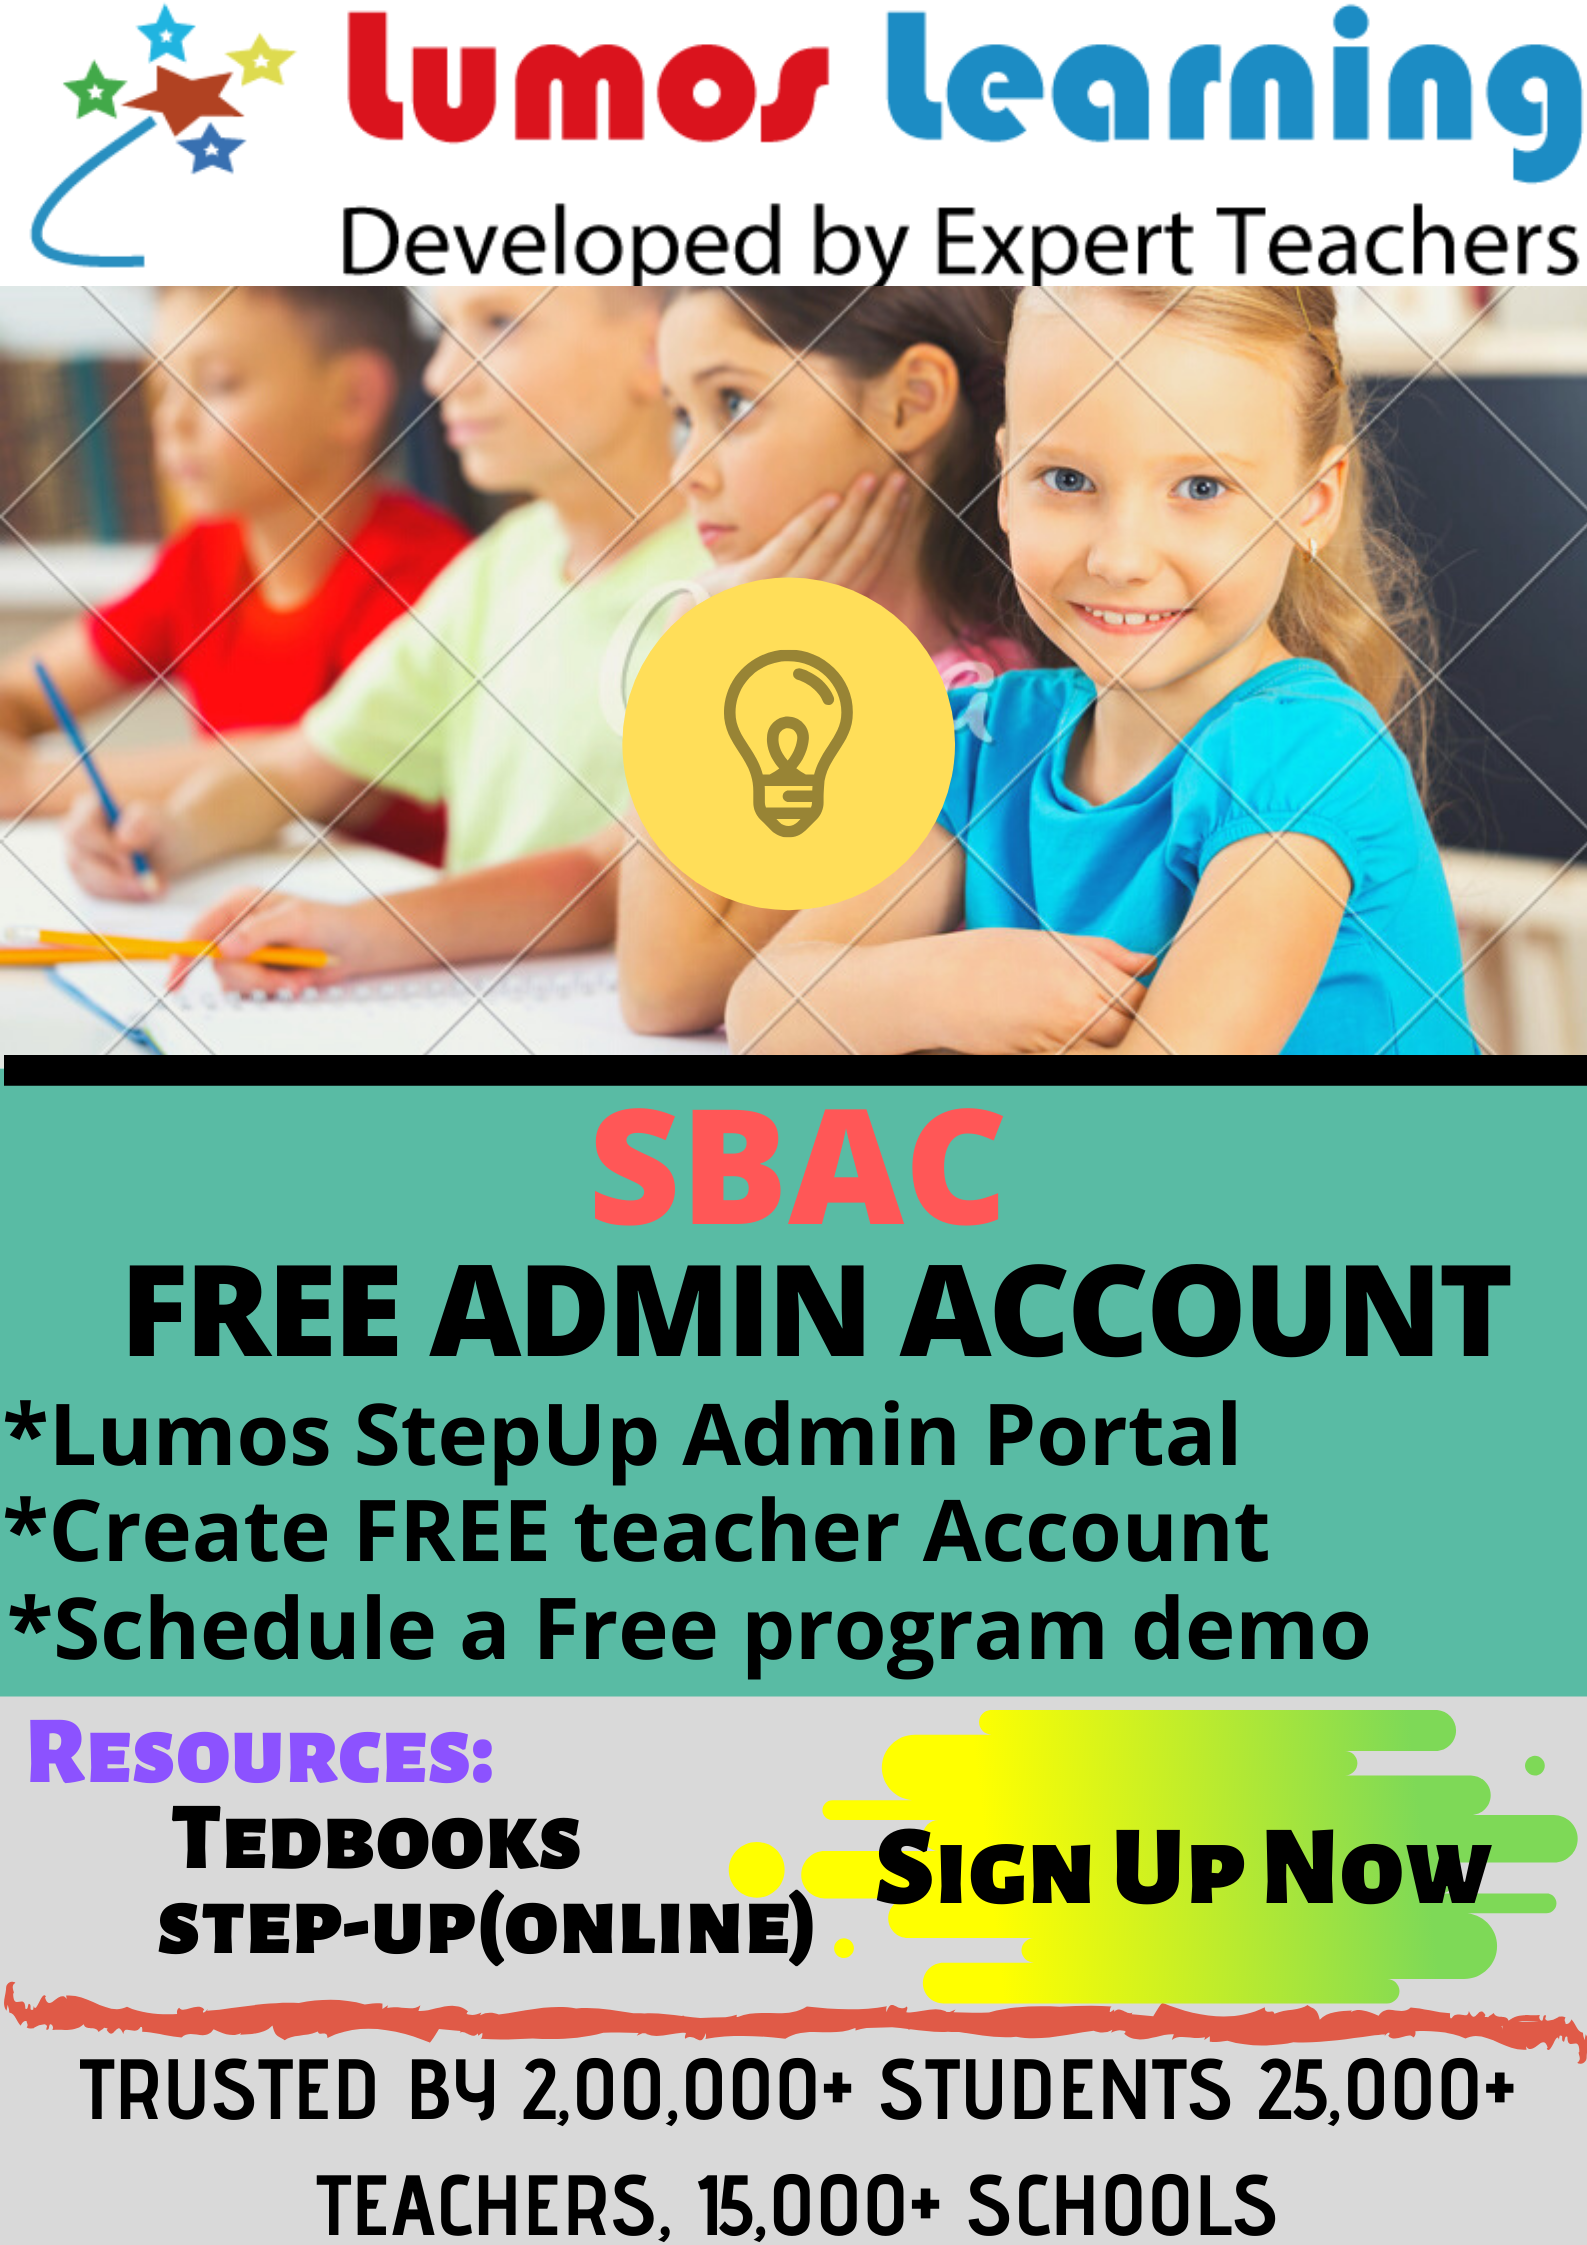 Sign Up With Your Free Admin Account Today And Get Free